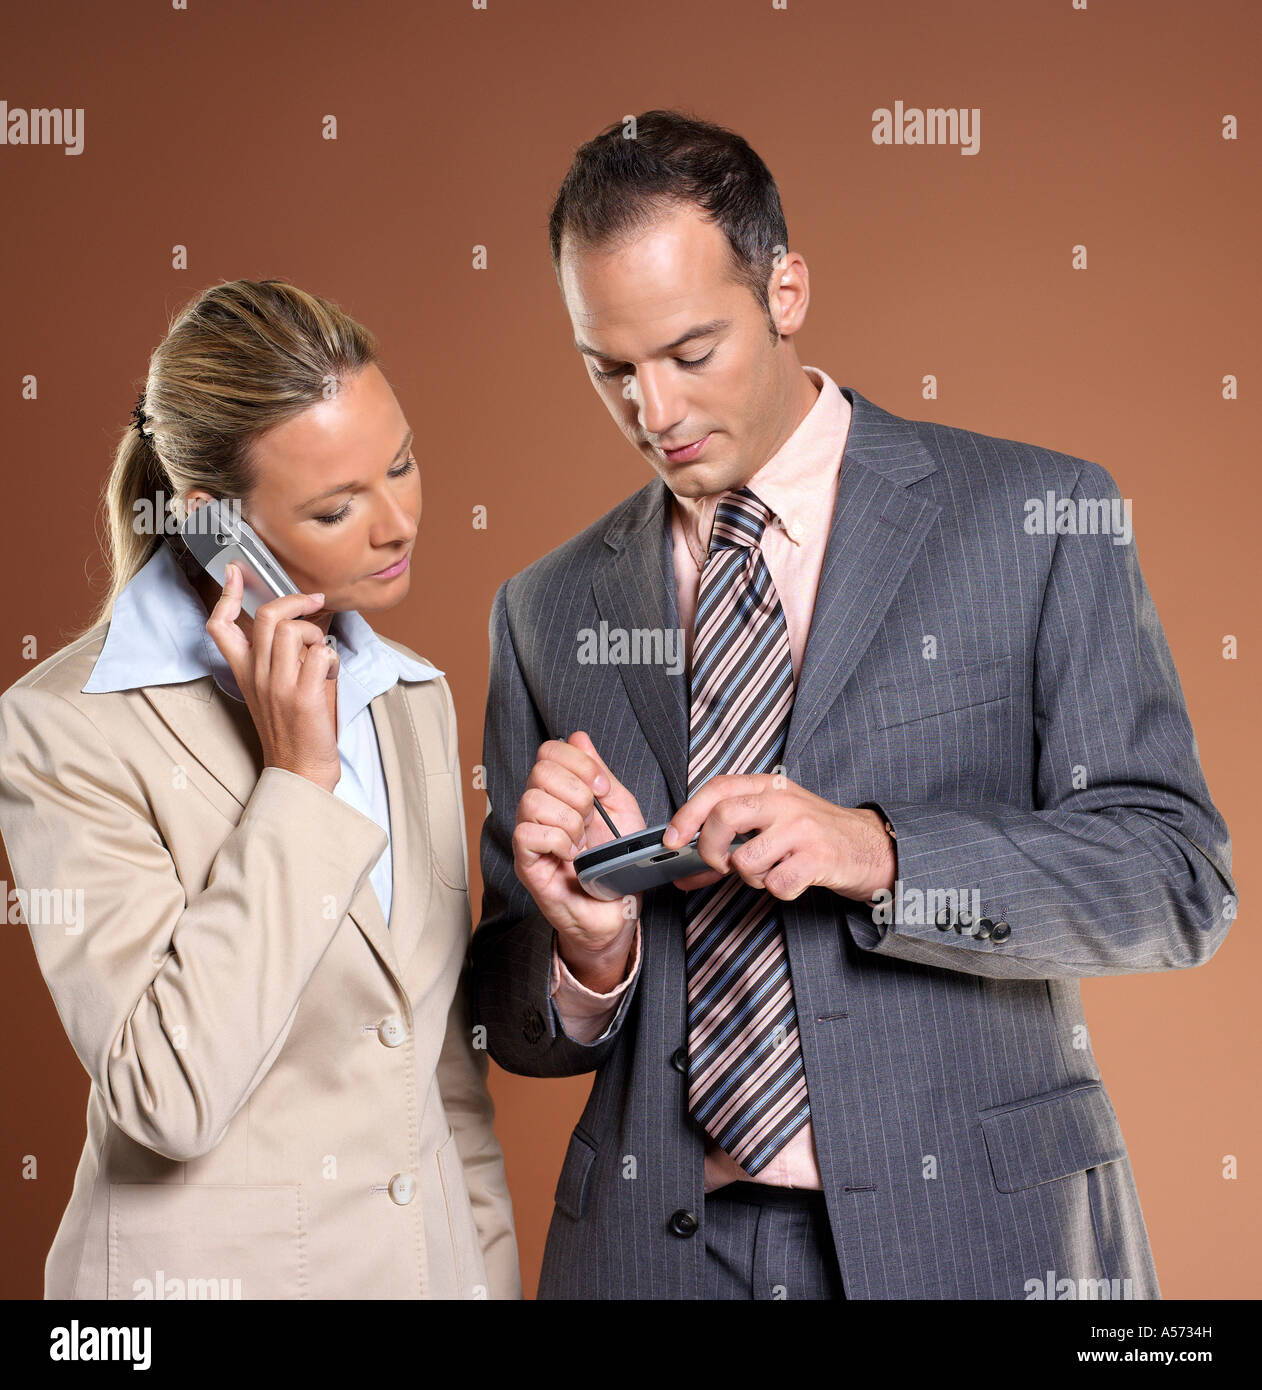 Businessman and woman using mobile phone and palmtop - Stock Image